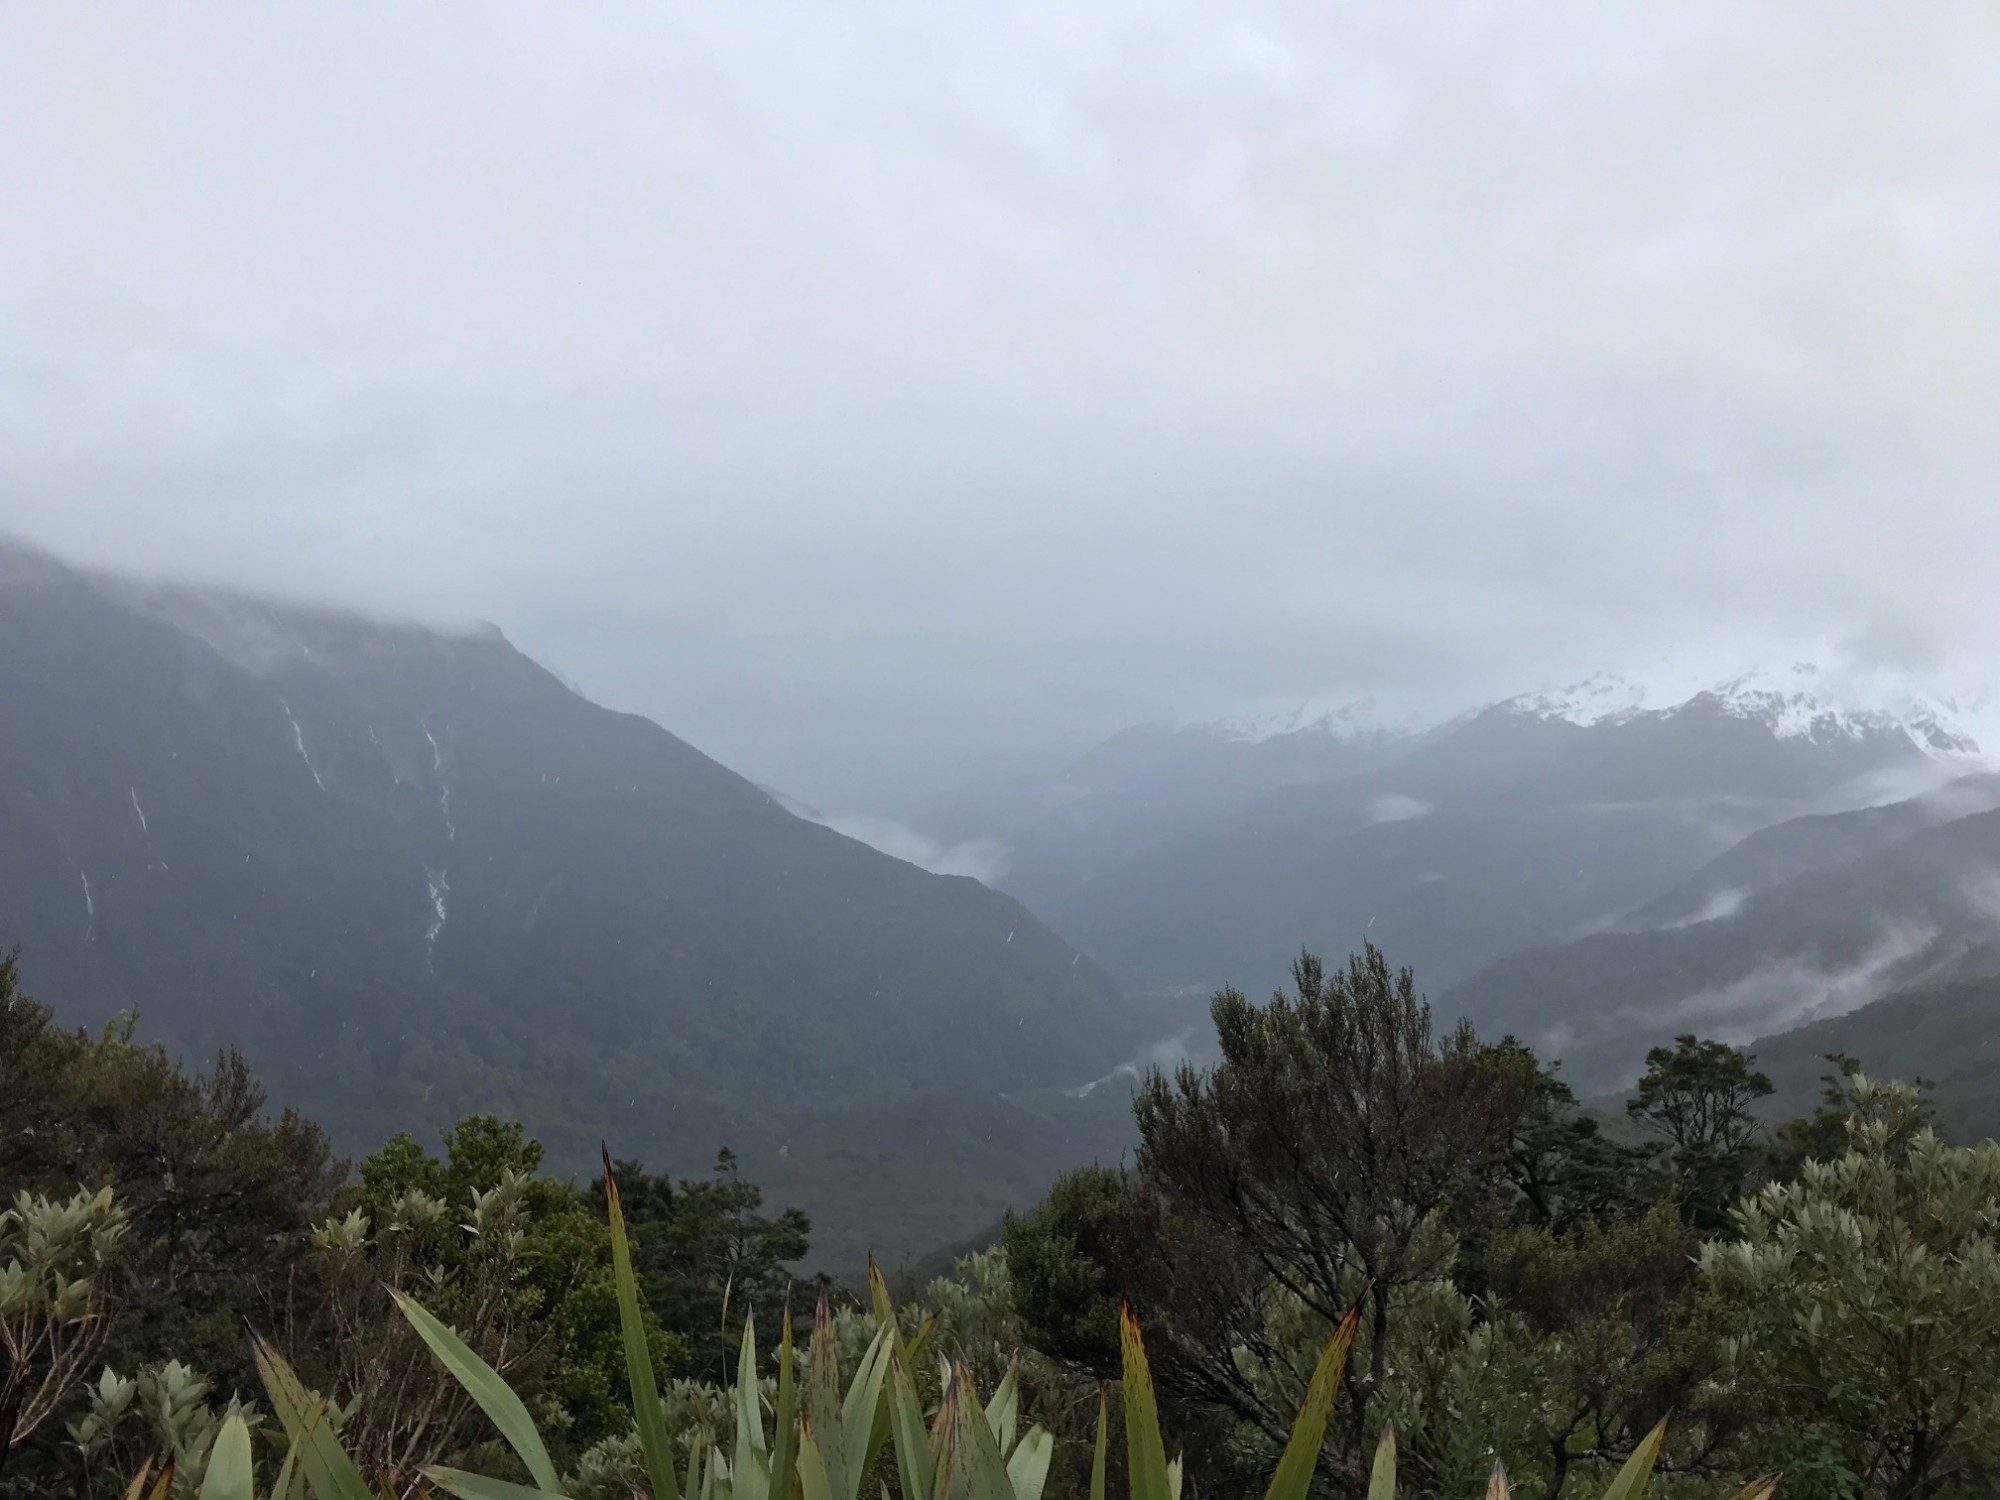 View of a forest covered valley with clouds on the mountains